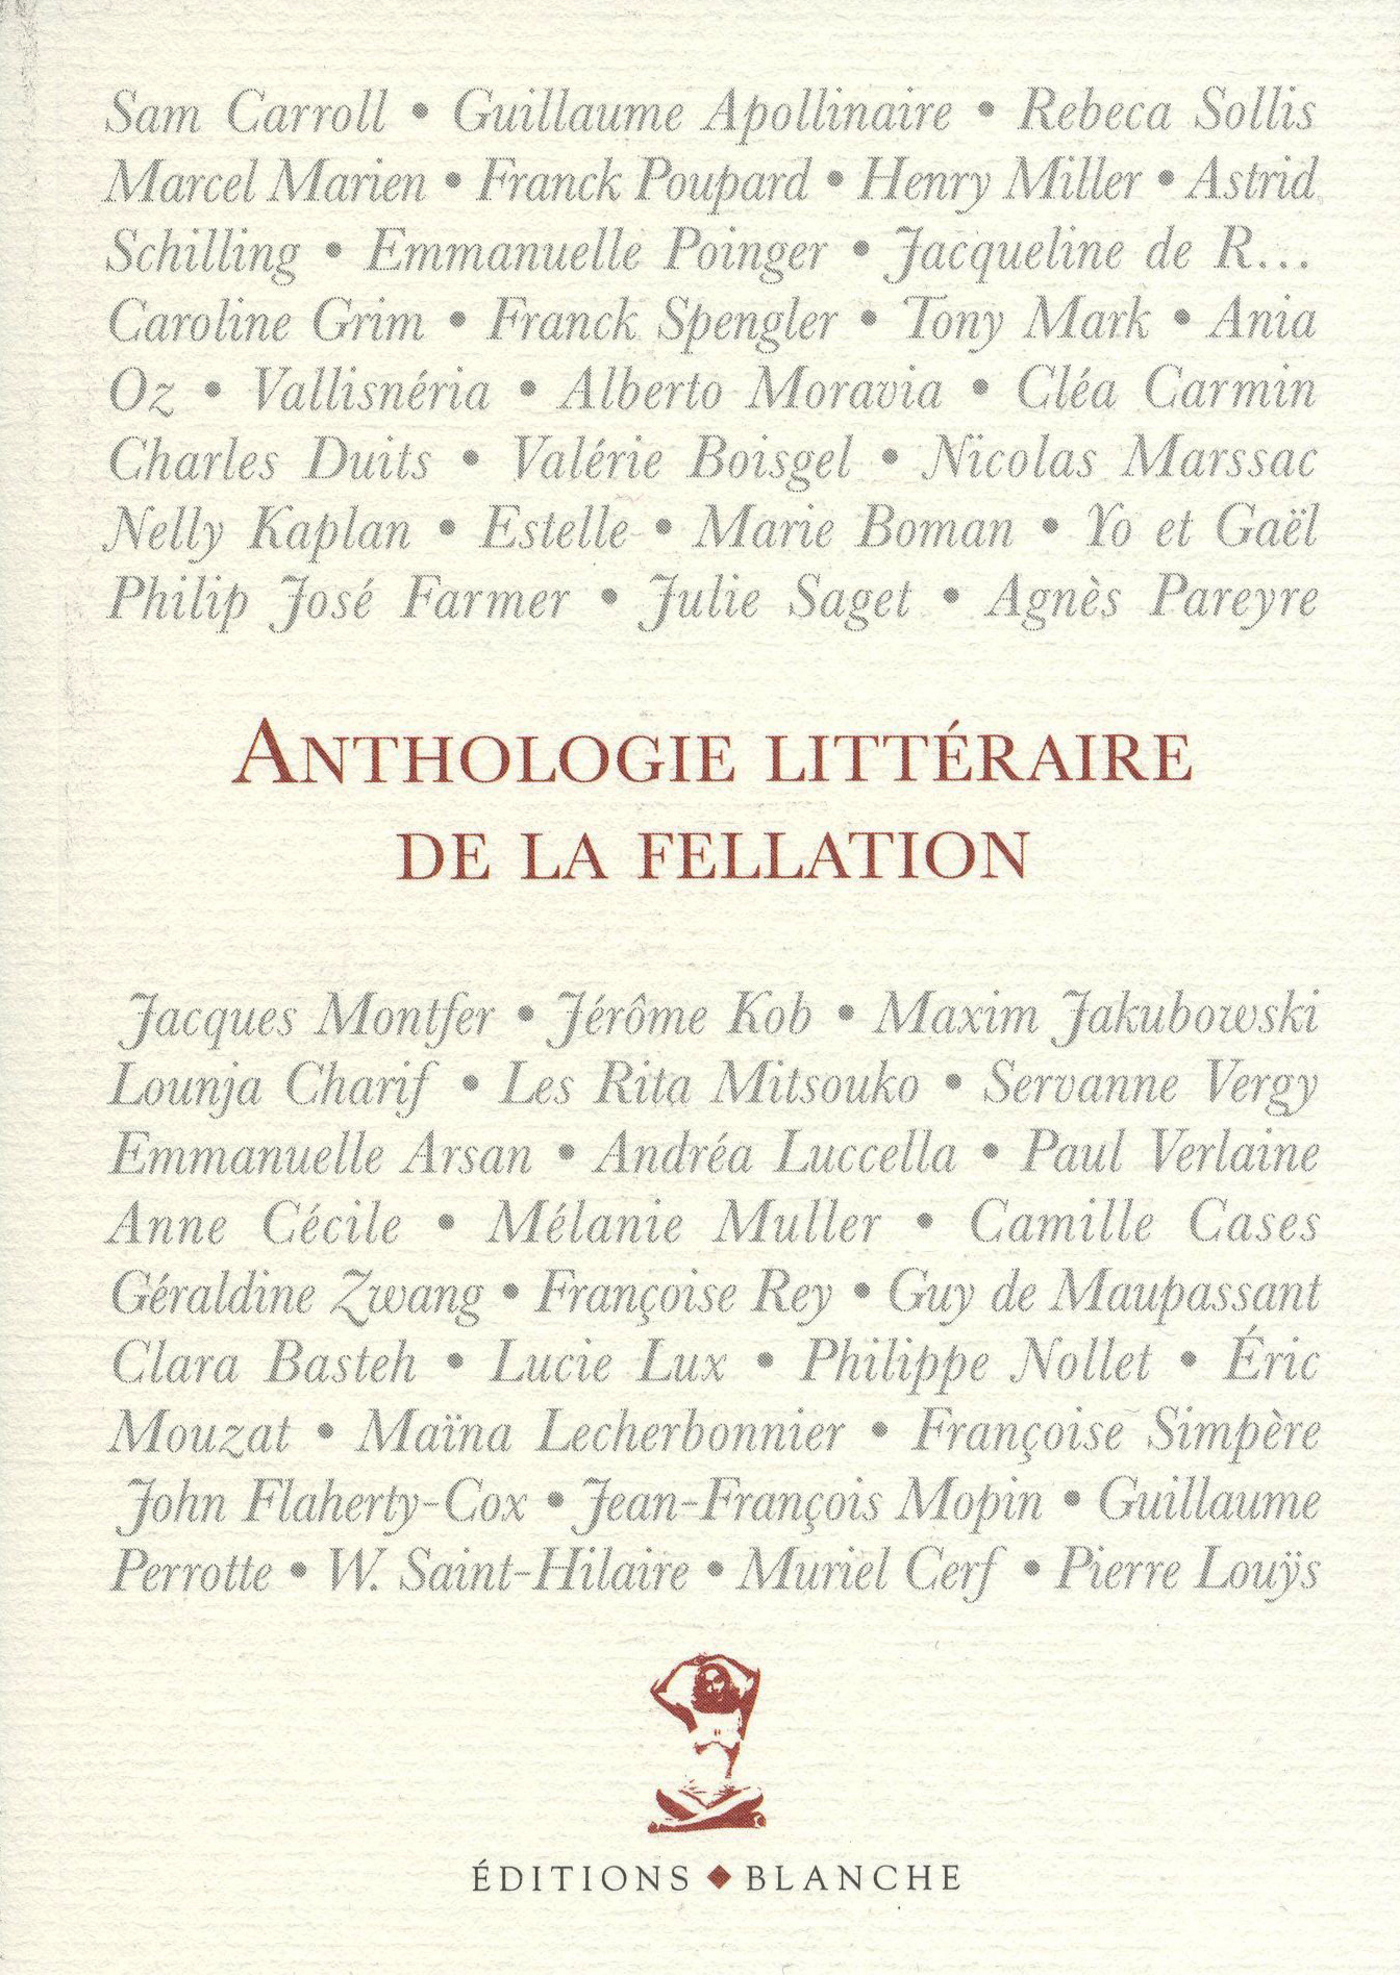 Vignette du livre ANTHOLOGIE LITTERAIRE DE LA FELLATION